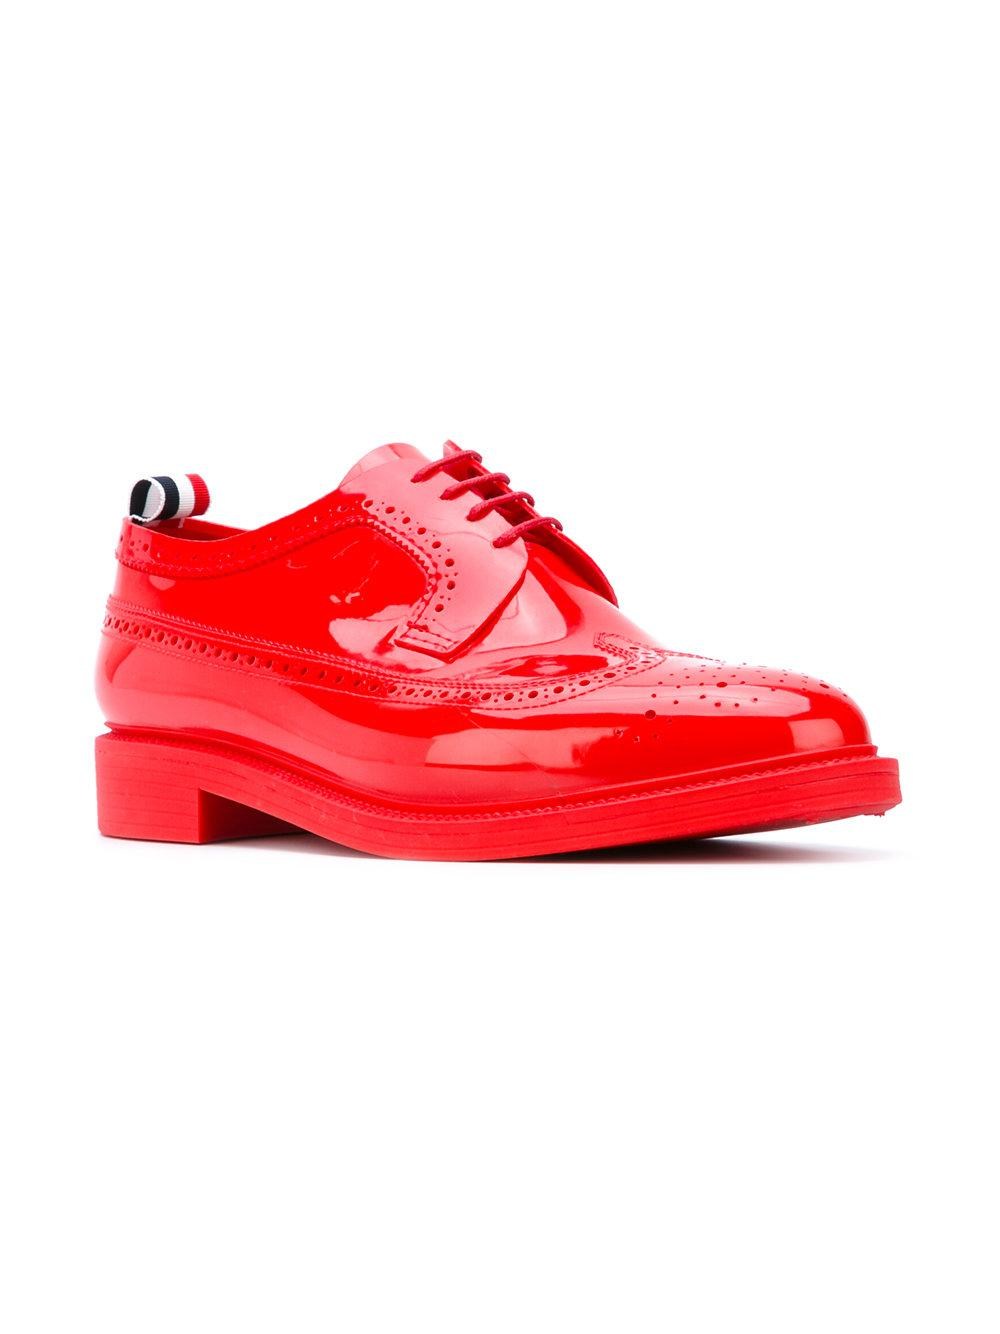 Thom Browne Rubber Varnish Brogues in Red for Men